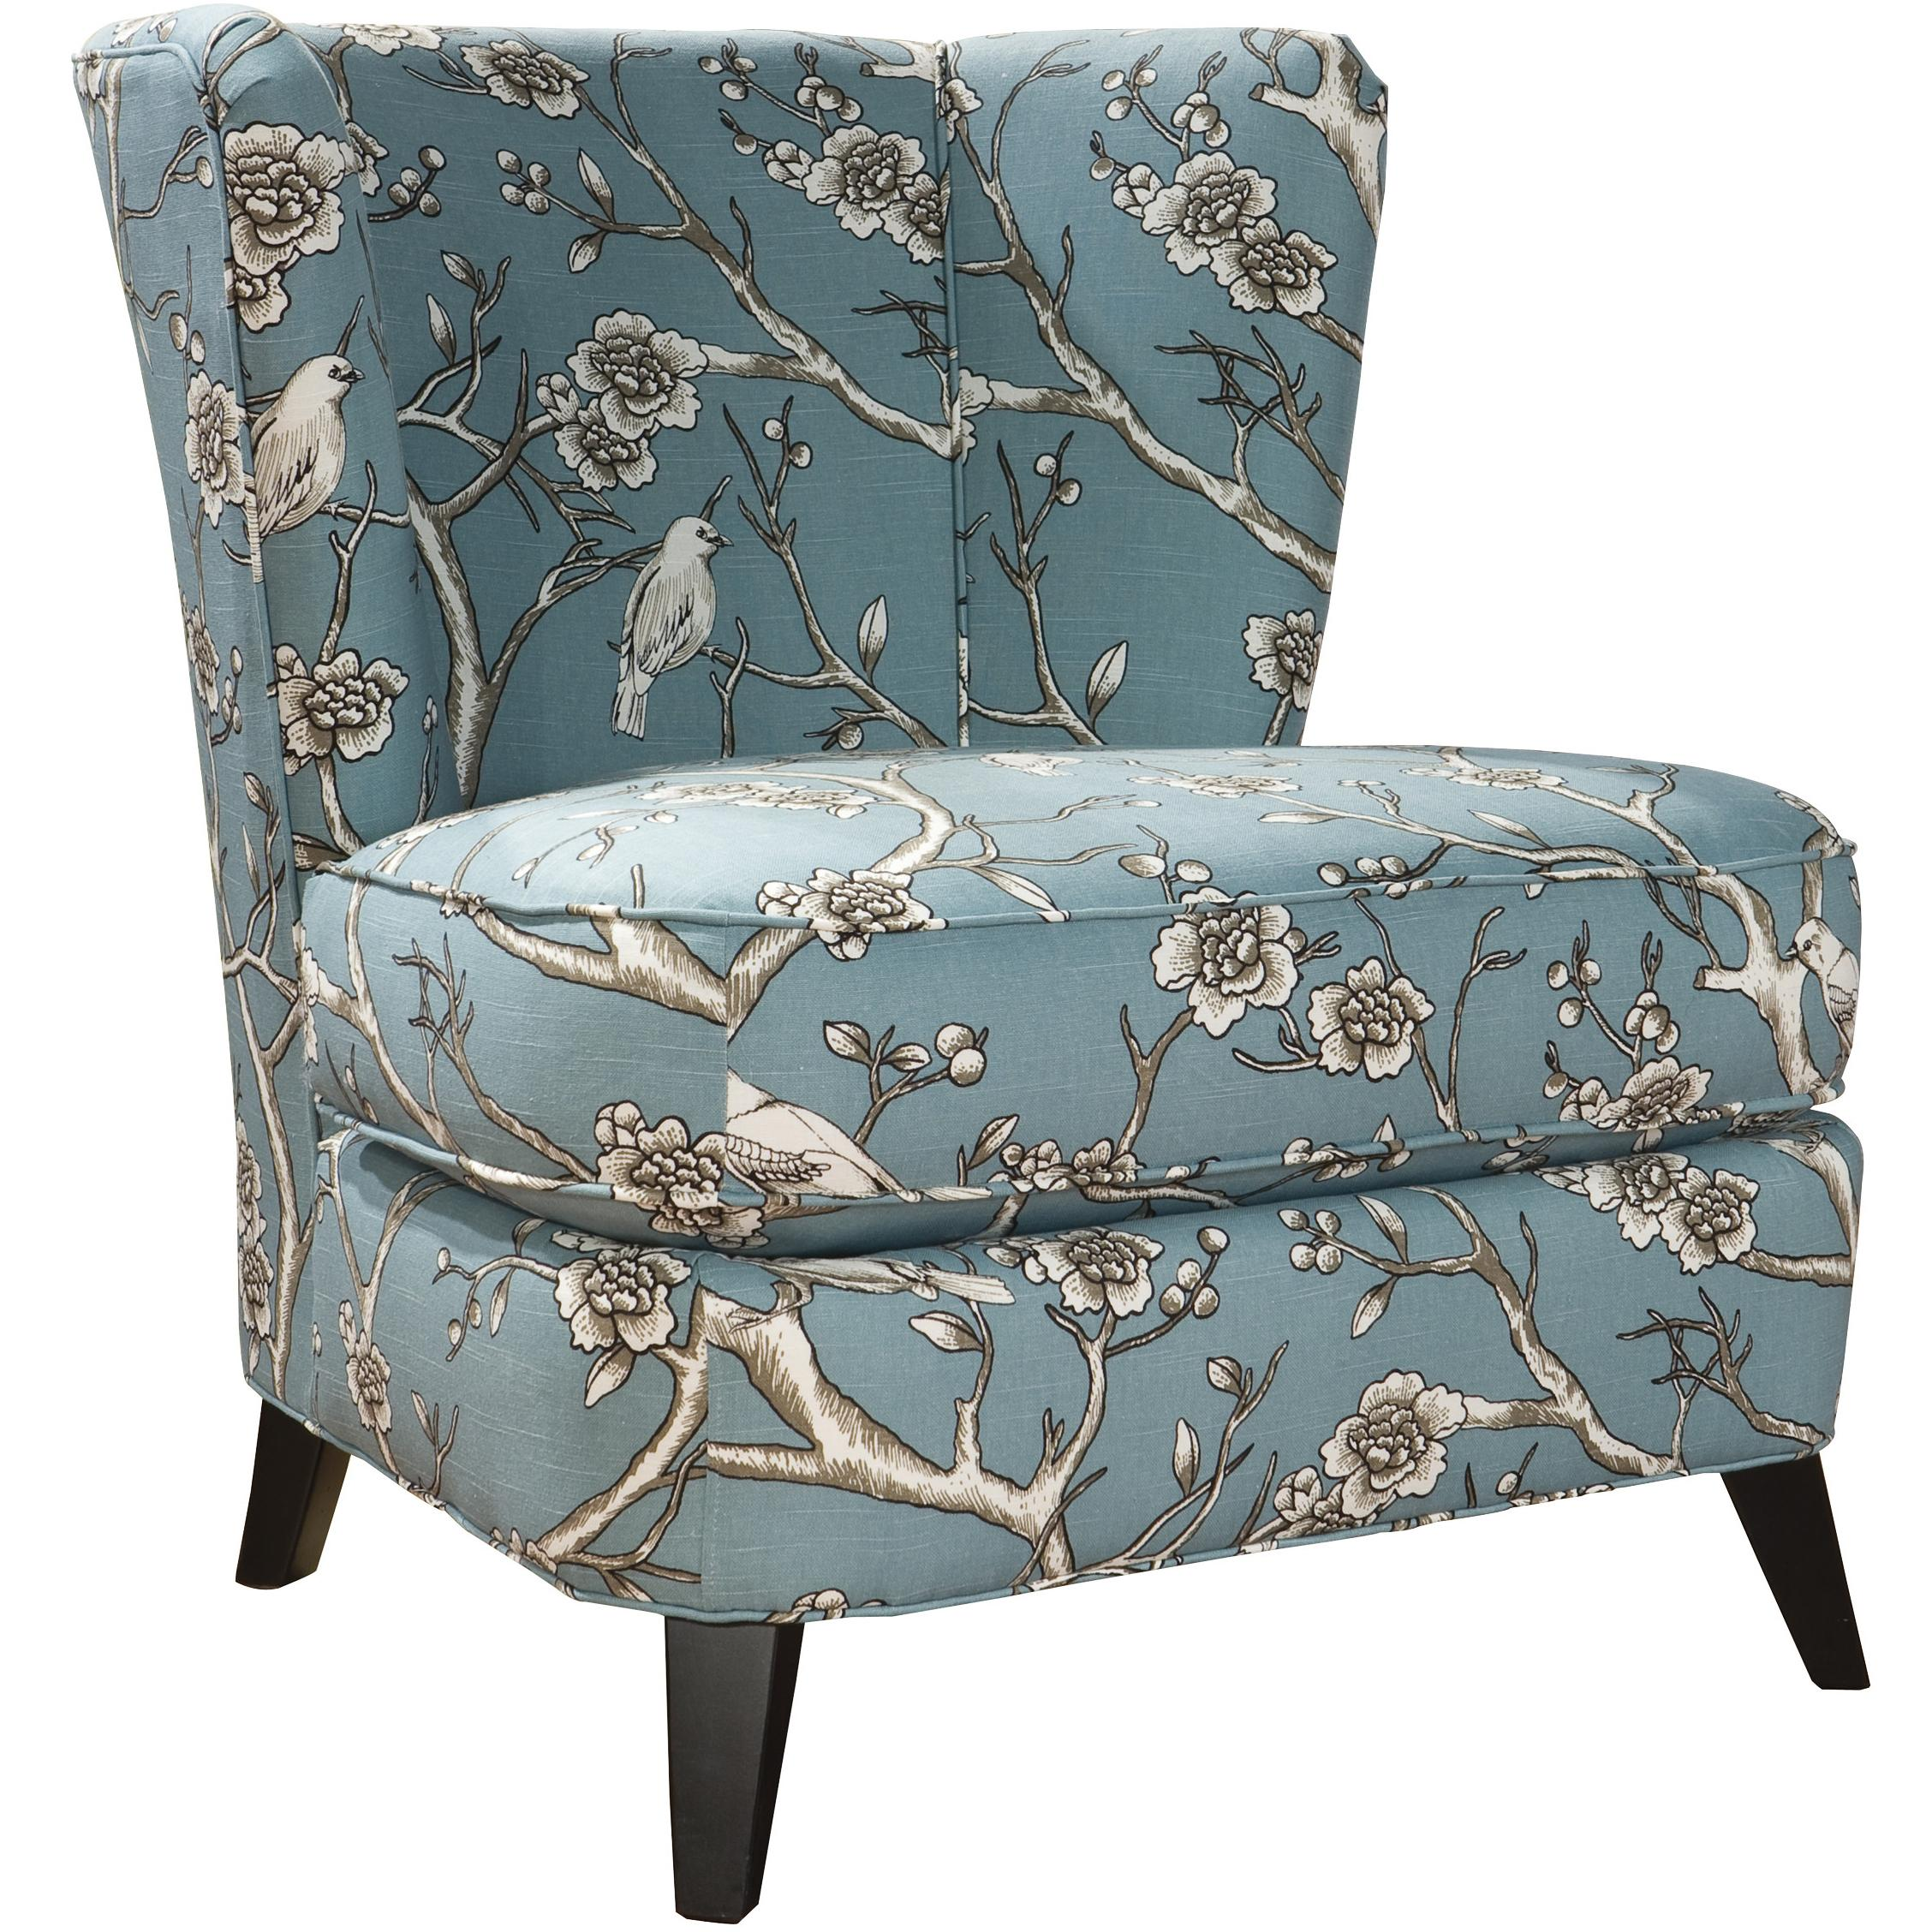 Tiara Contemporary Accent Chair by Hekman at Alison Craig Home Furnishings